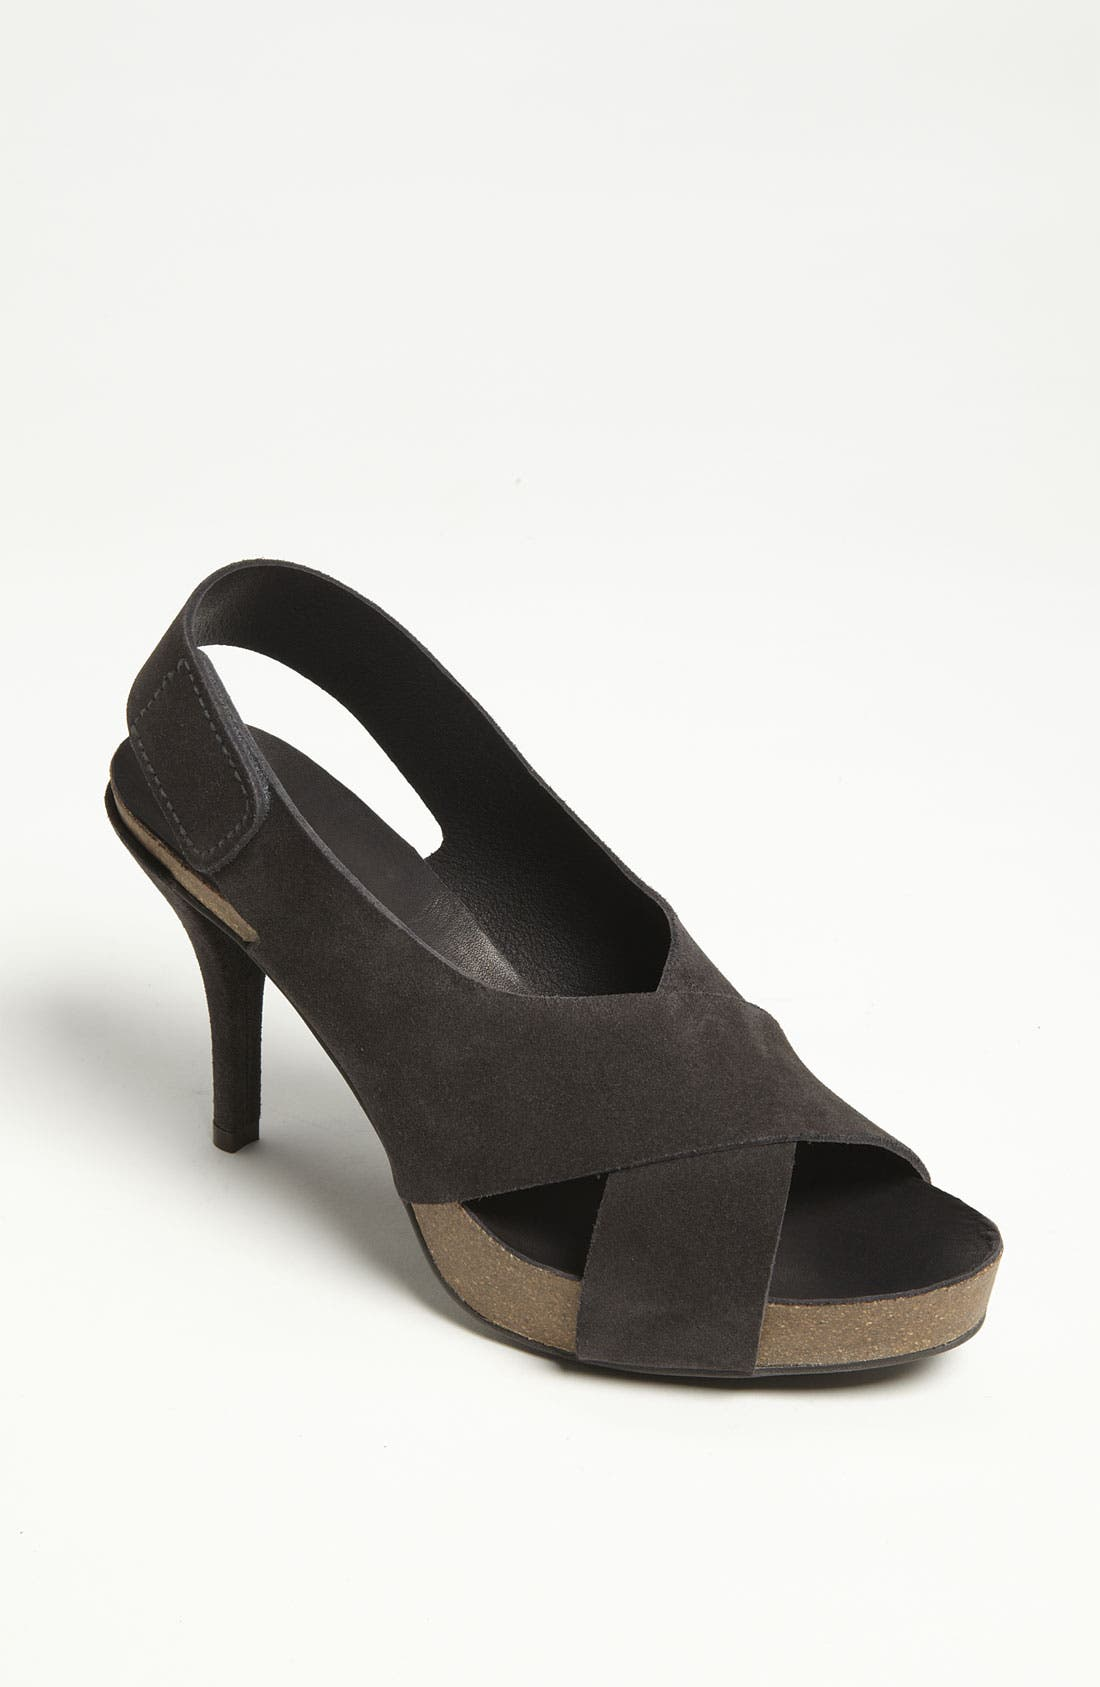 Alternate Image 1 Selected - Pedro Garcia 'Libby' Sandal (Nordstrom Exclusive)